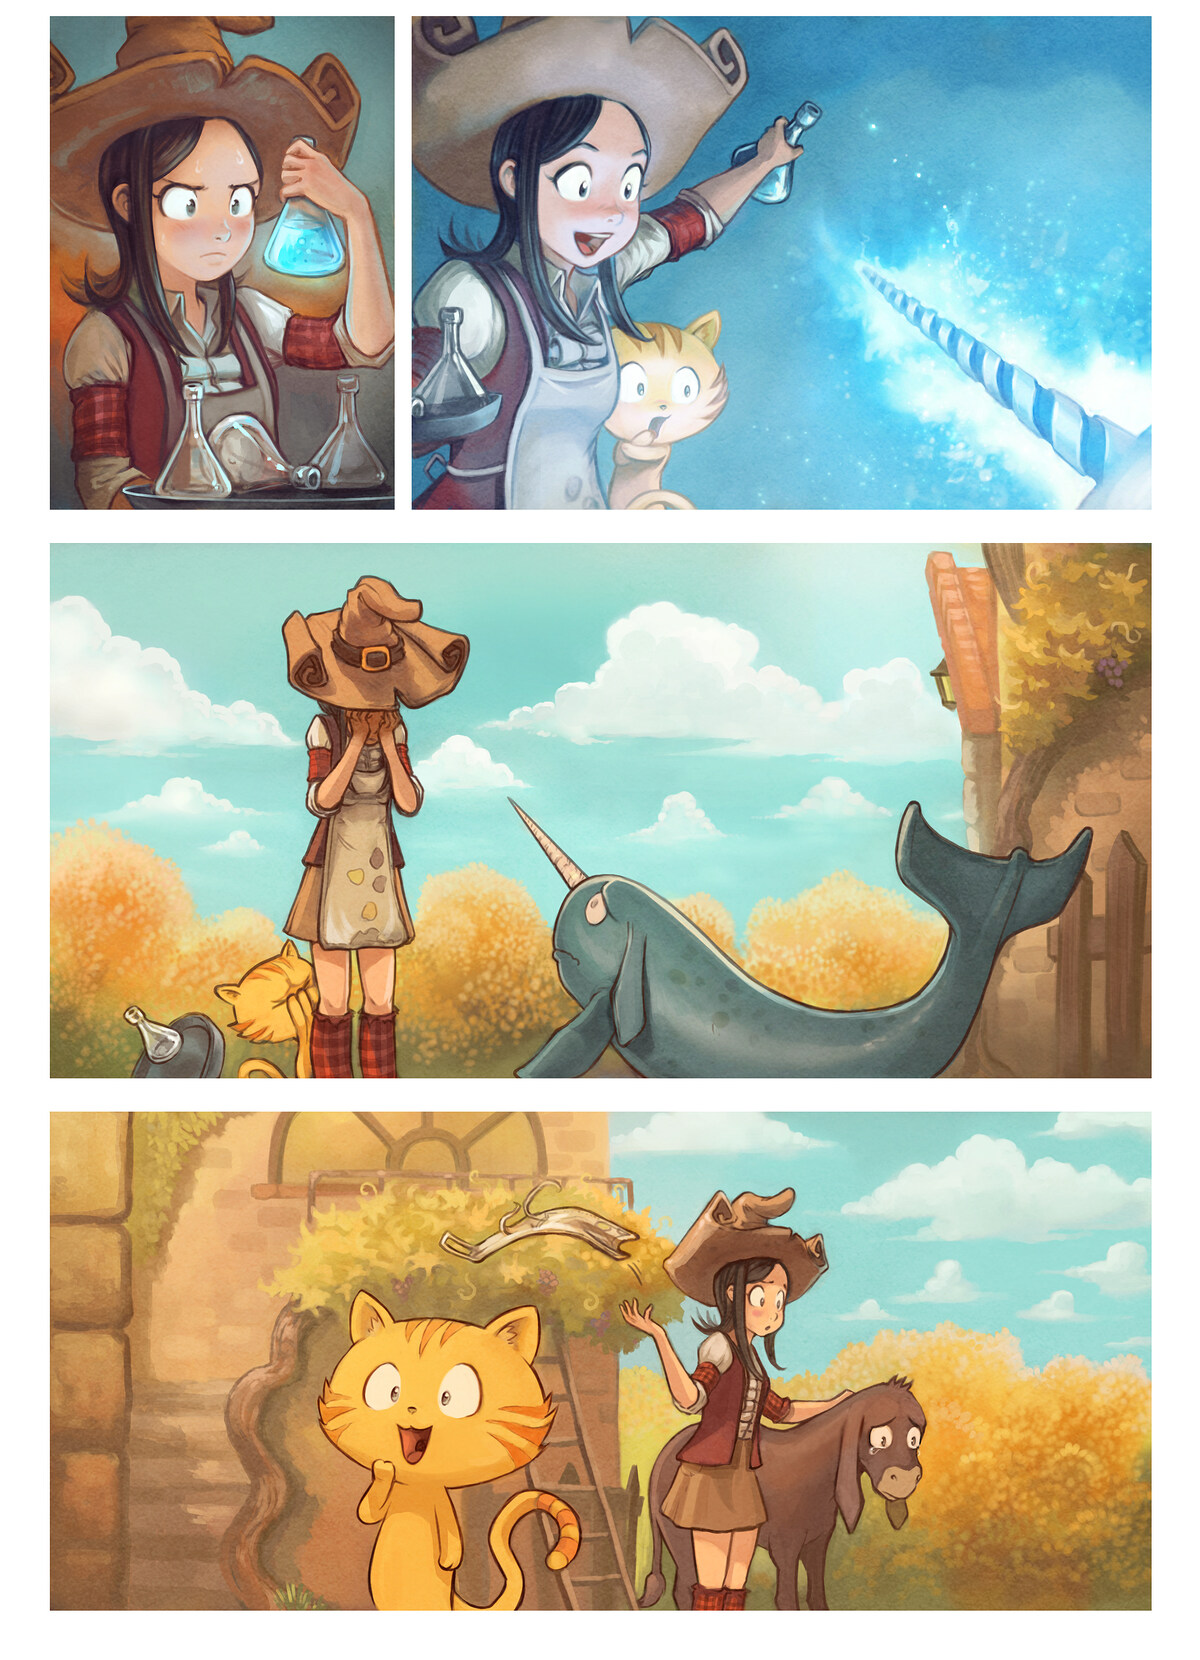 A webcomic page of Pepper&Carrot, 漫画全集 20 [cn], 页面 5